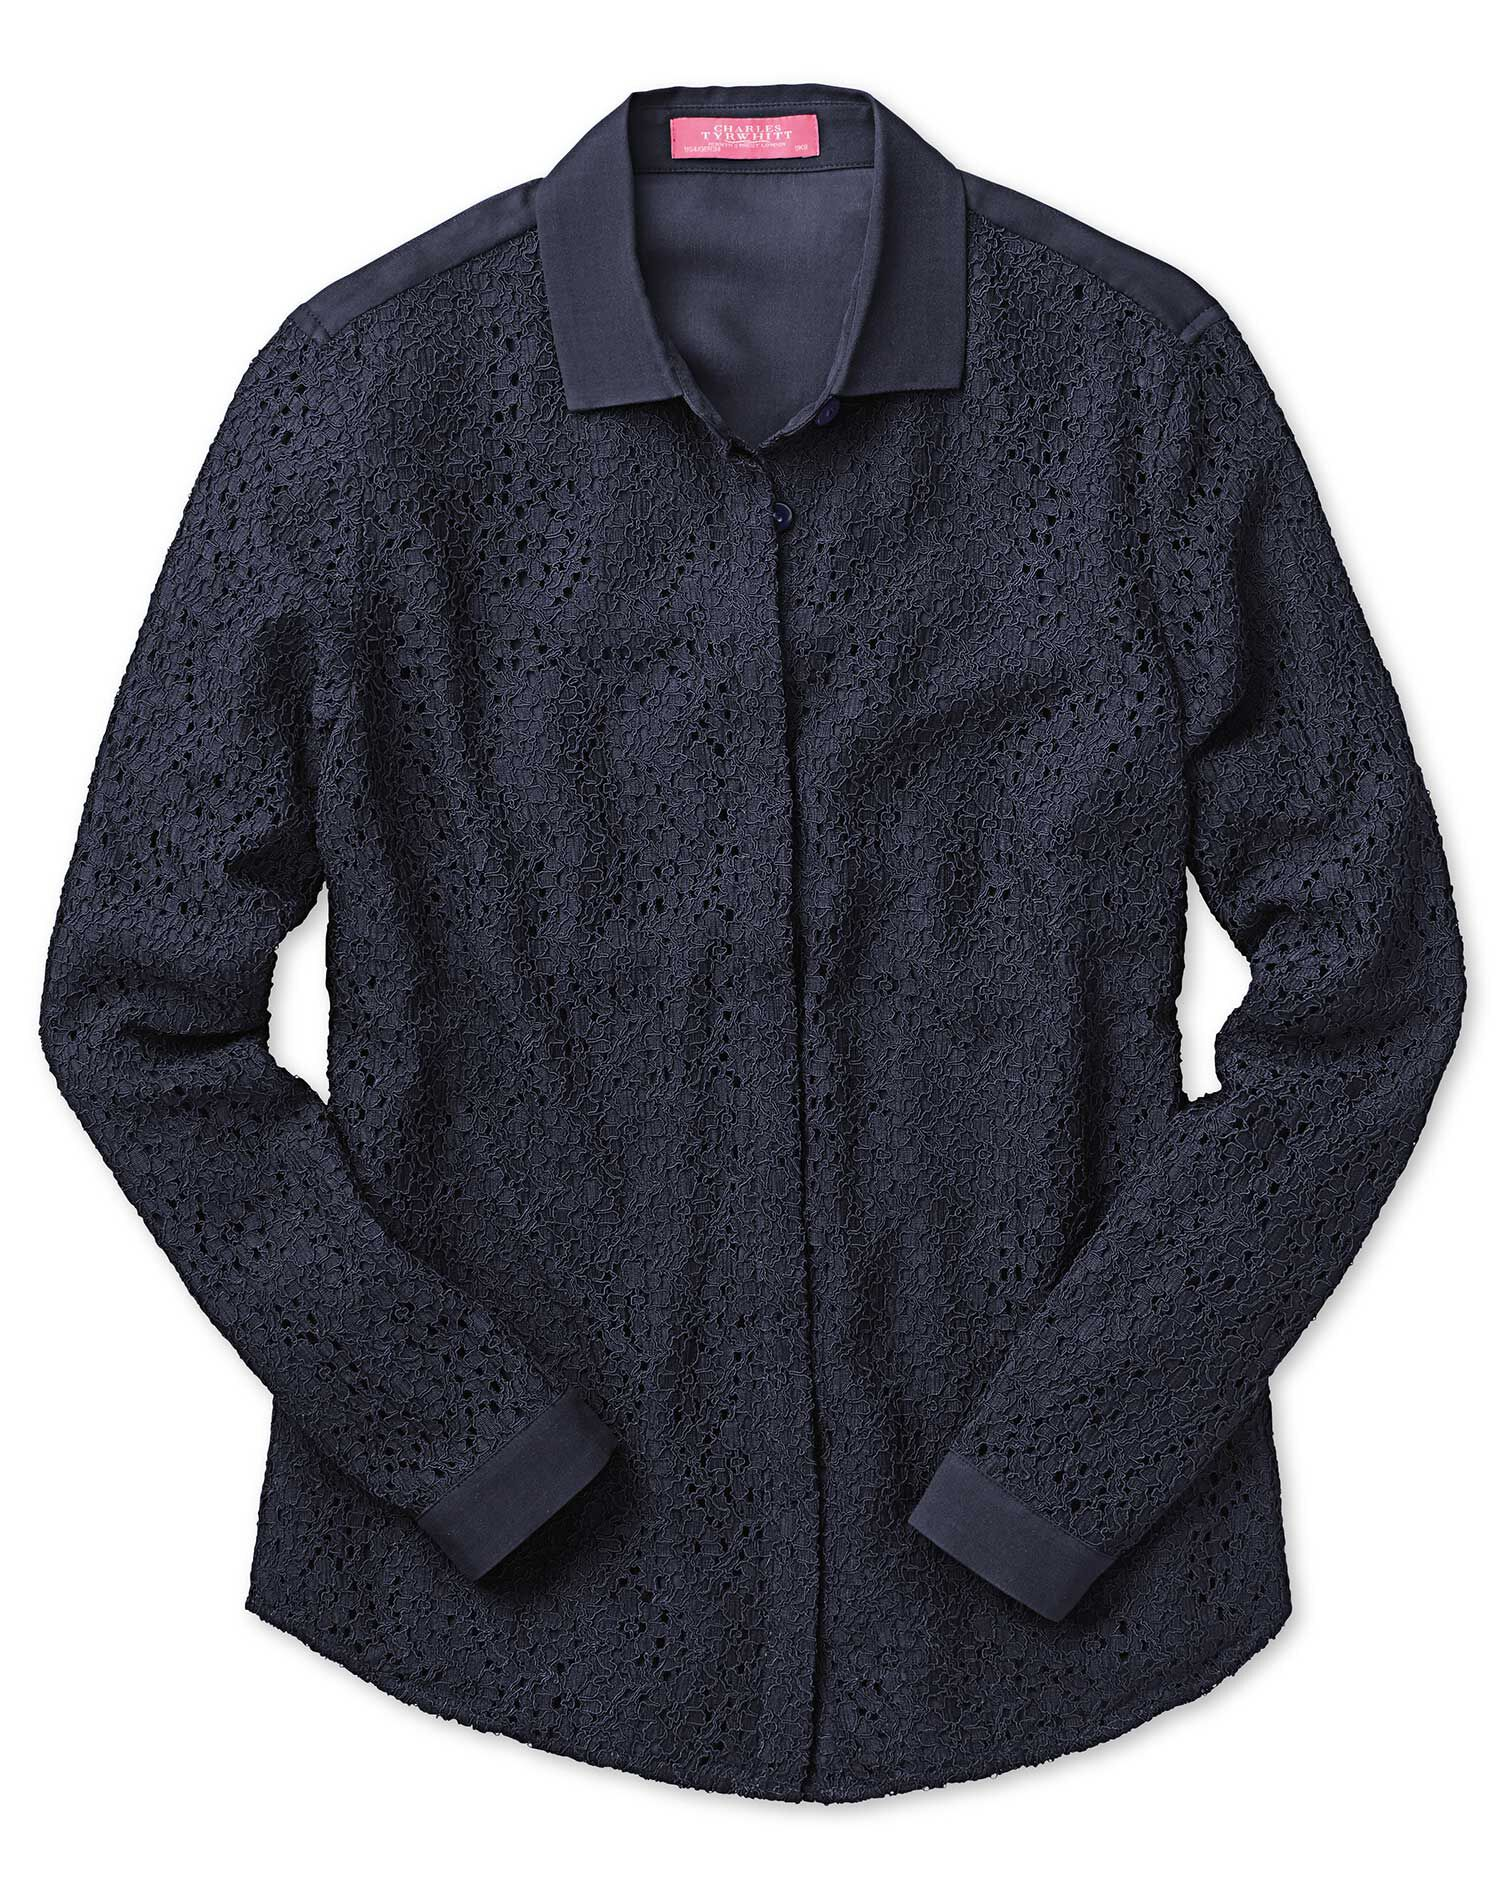 Charles Tyrwhitt Women's Semi Fitted Corded Lace Navy Silk Shirt Size 4